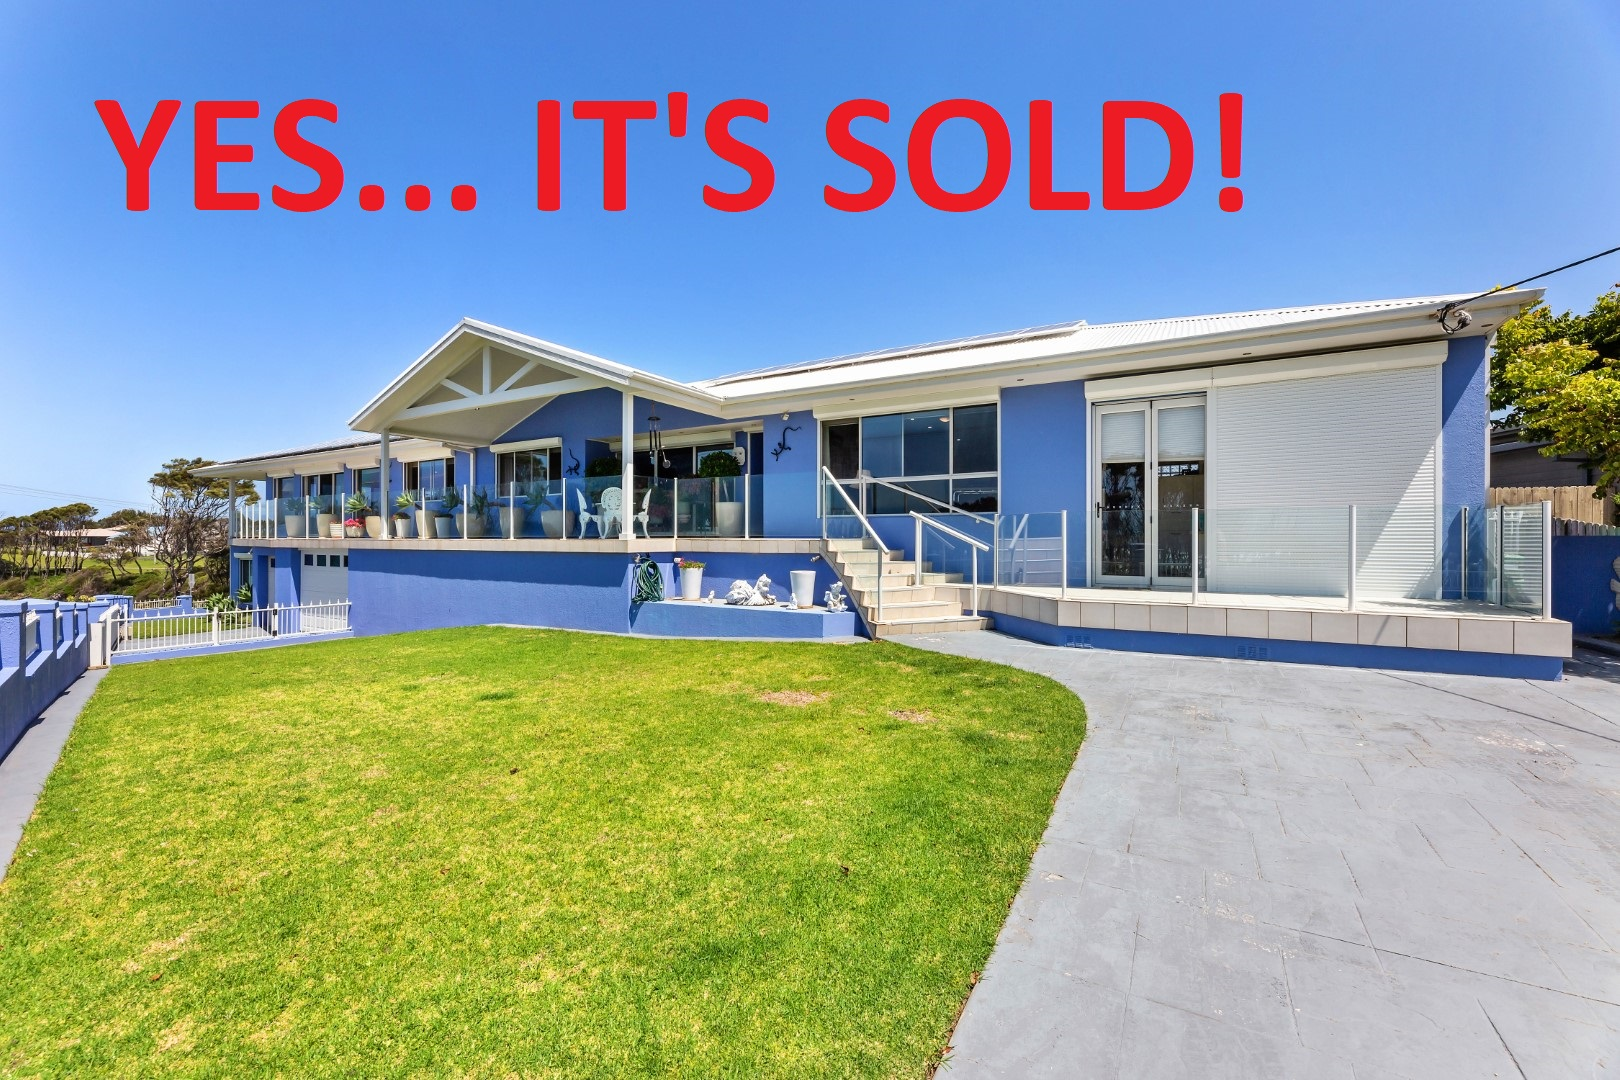 The house and location sold itself!